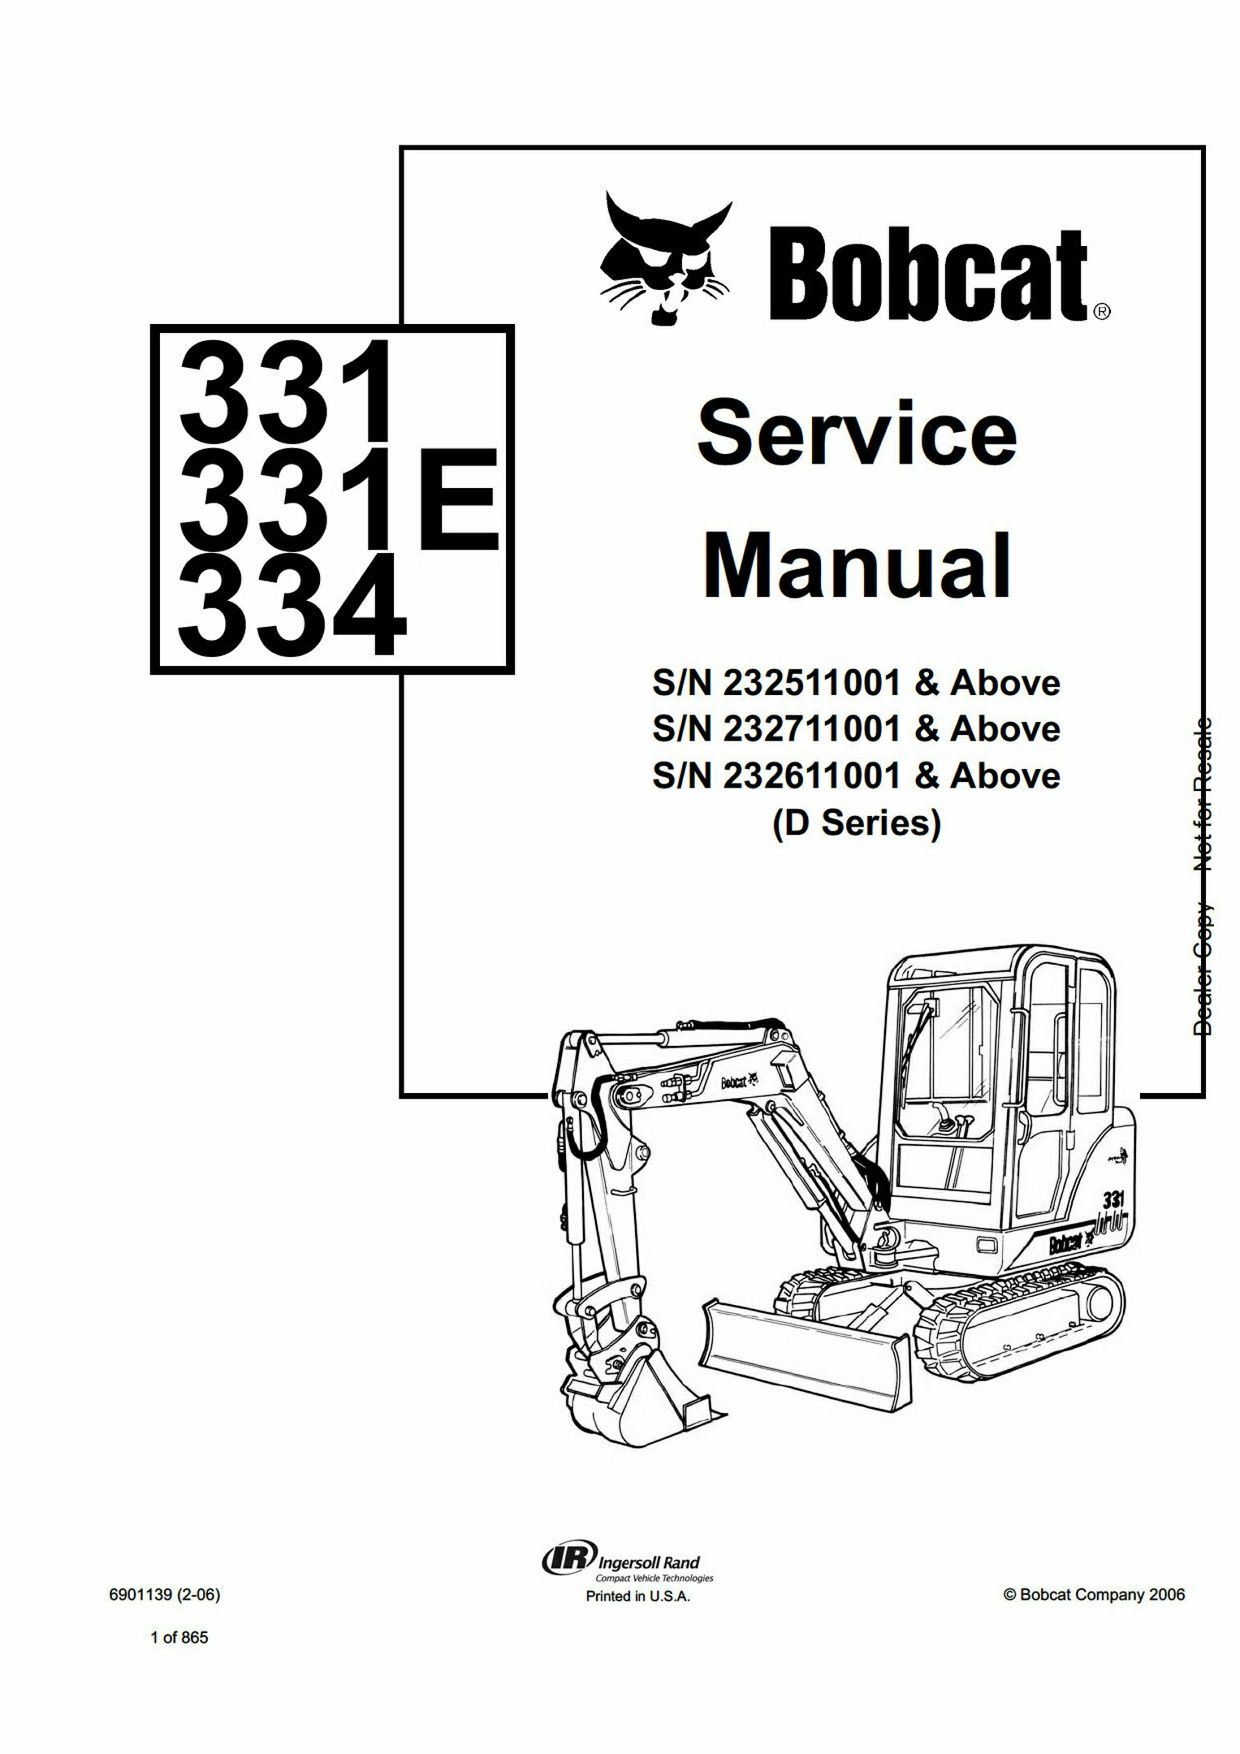 hight resolution of pdf bobcat 331 331e 334 compact excavator service manual sn 232611001 and above